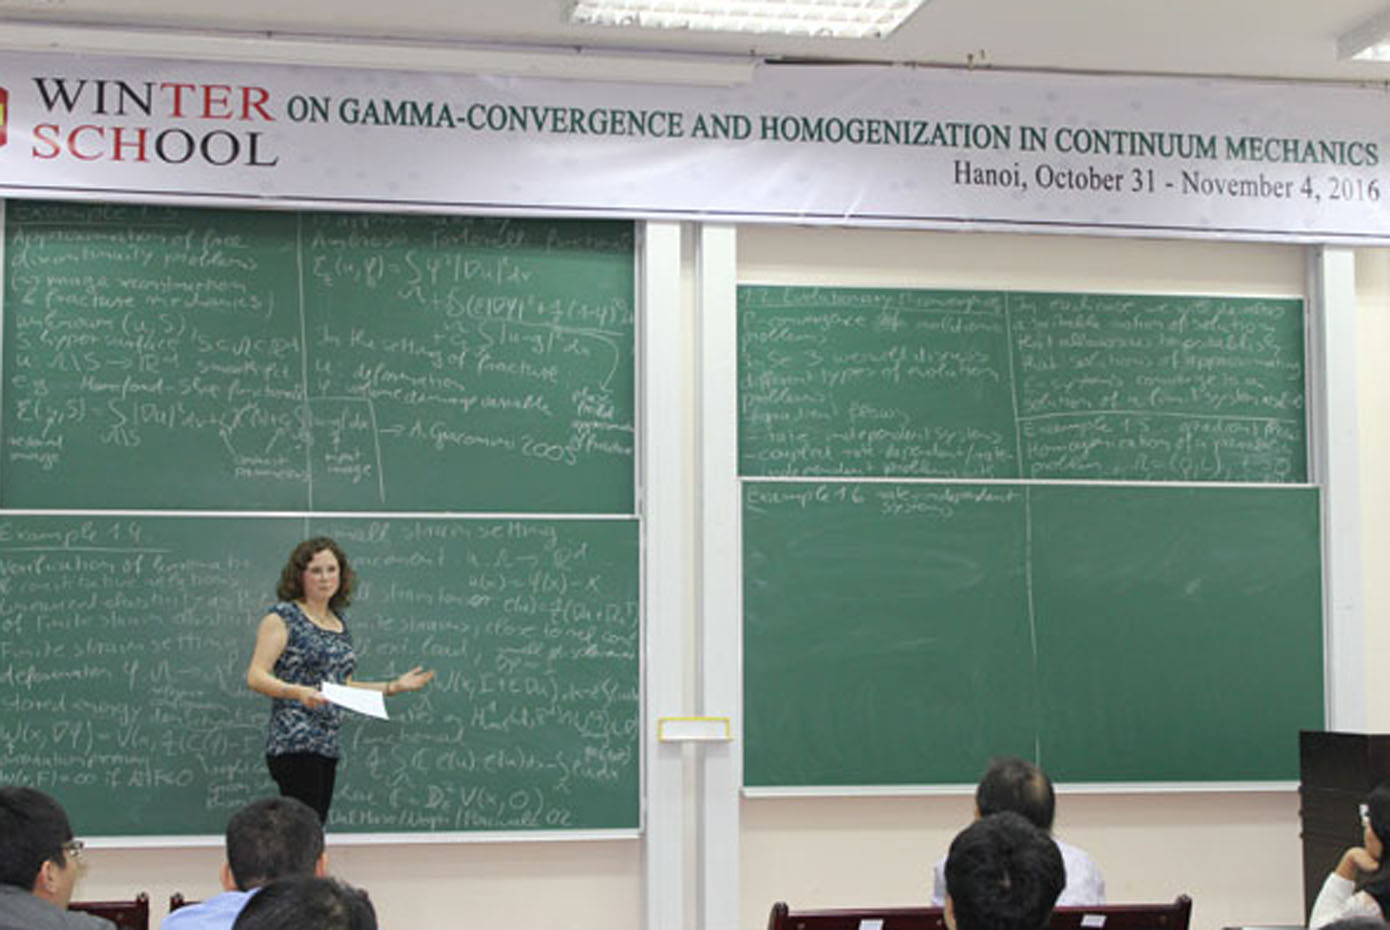 The winter school on Gamma-Convergence and Homogenization in Continuum Mechanics